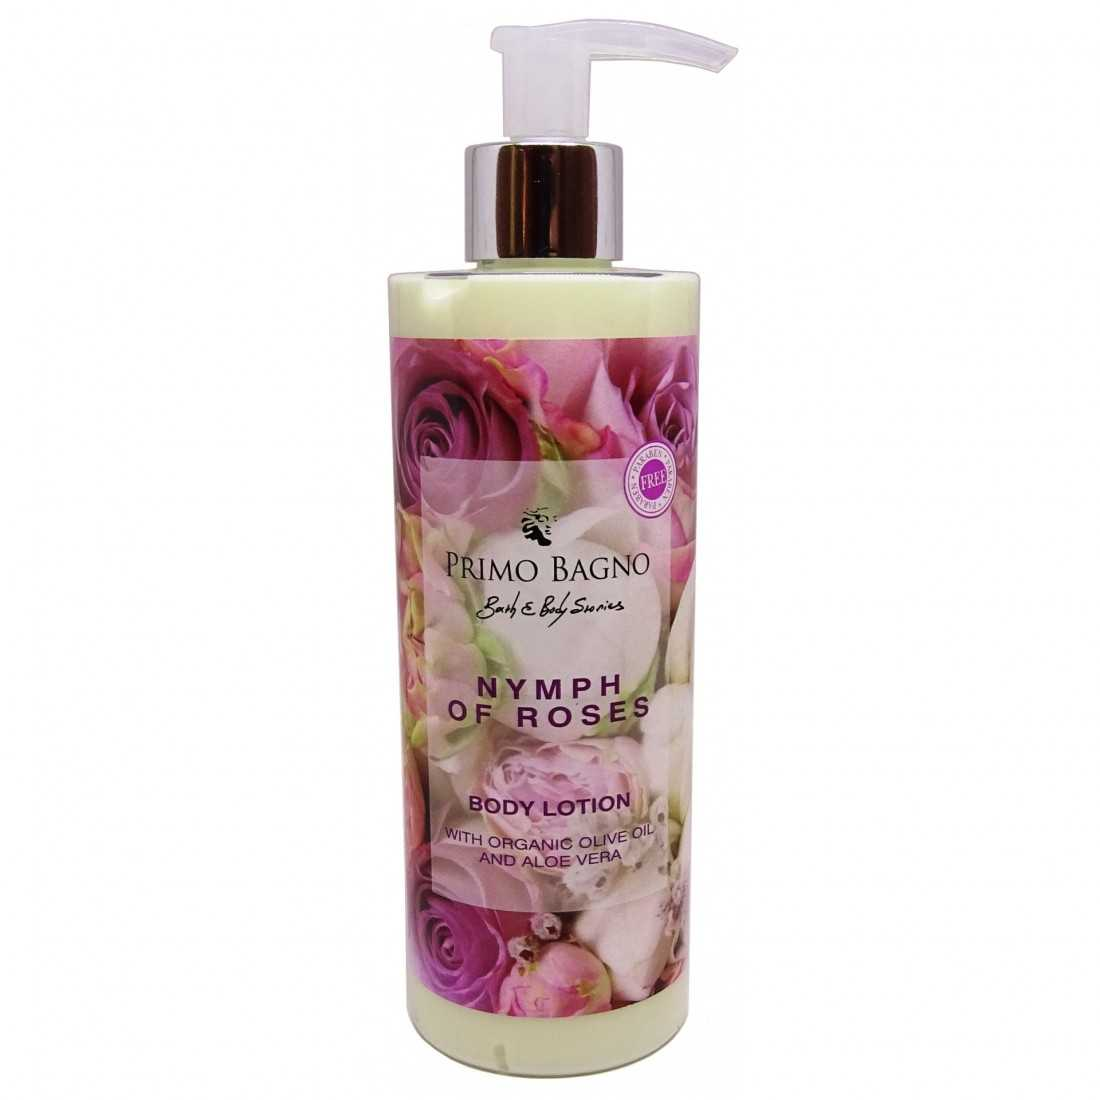 Primo Bagno - Nymph Of Roses Body Lotion